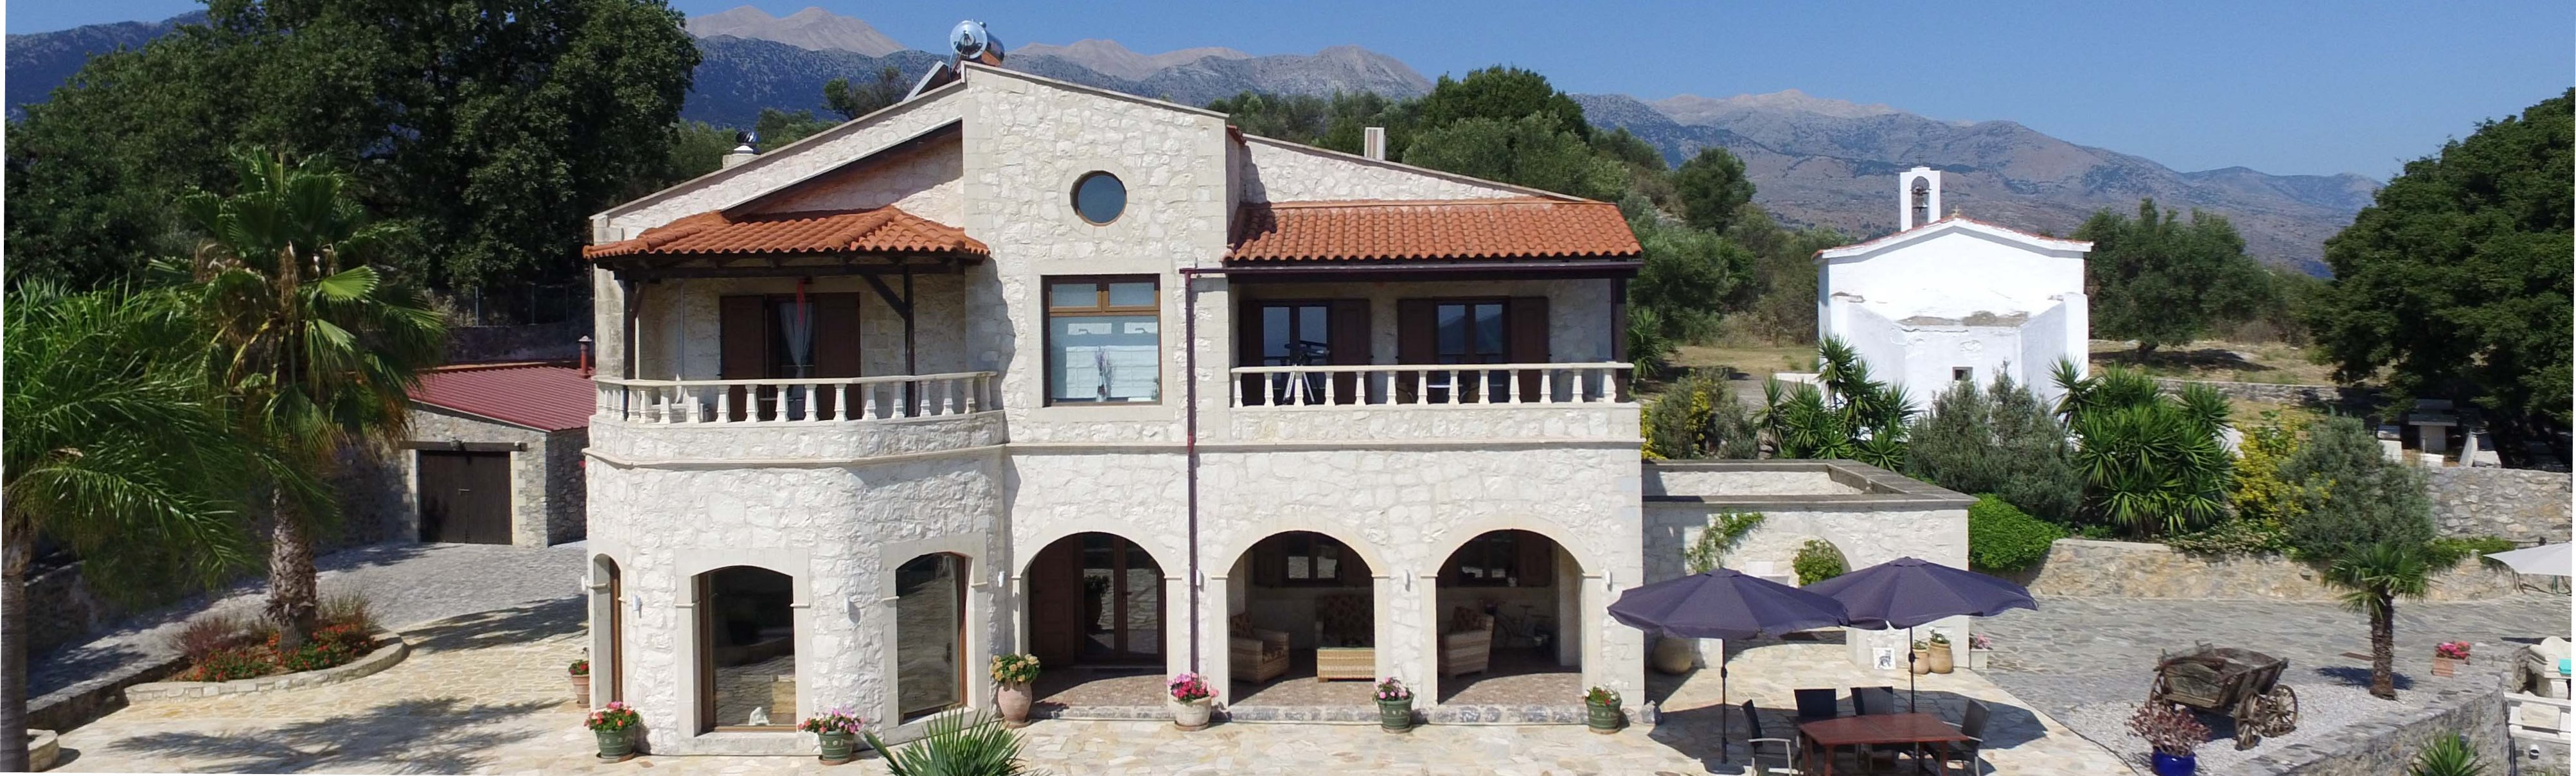 DC-685 - EXCLUSIVE VILLA IN FILIPOS - €1,500,000